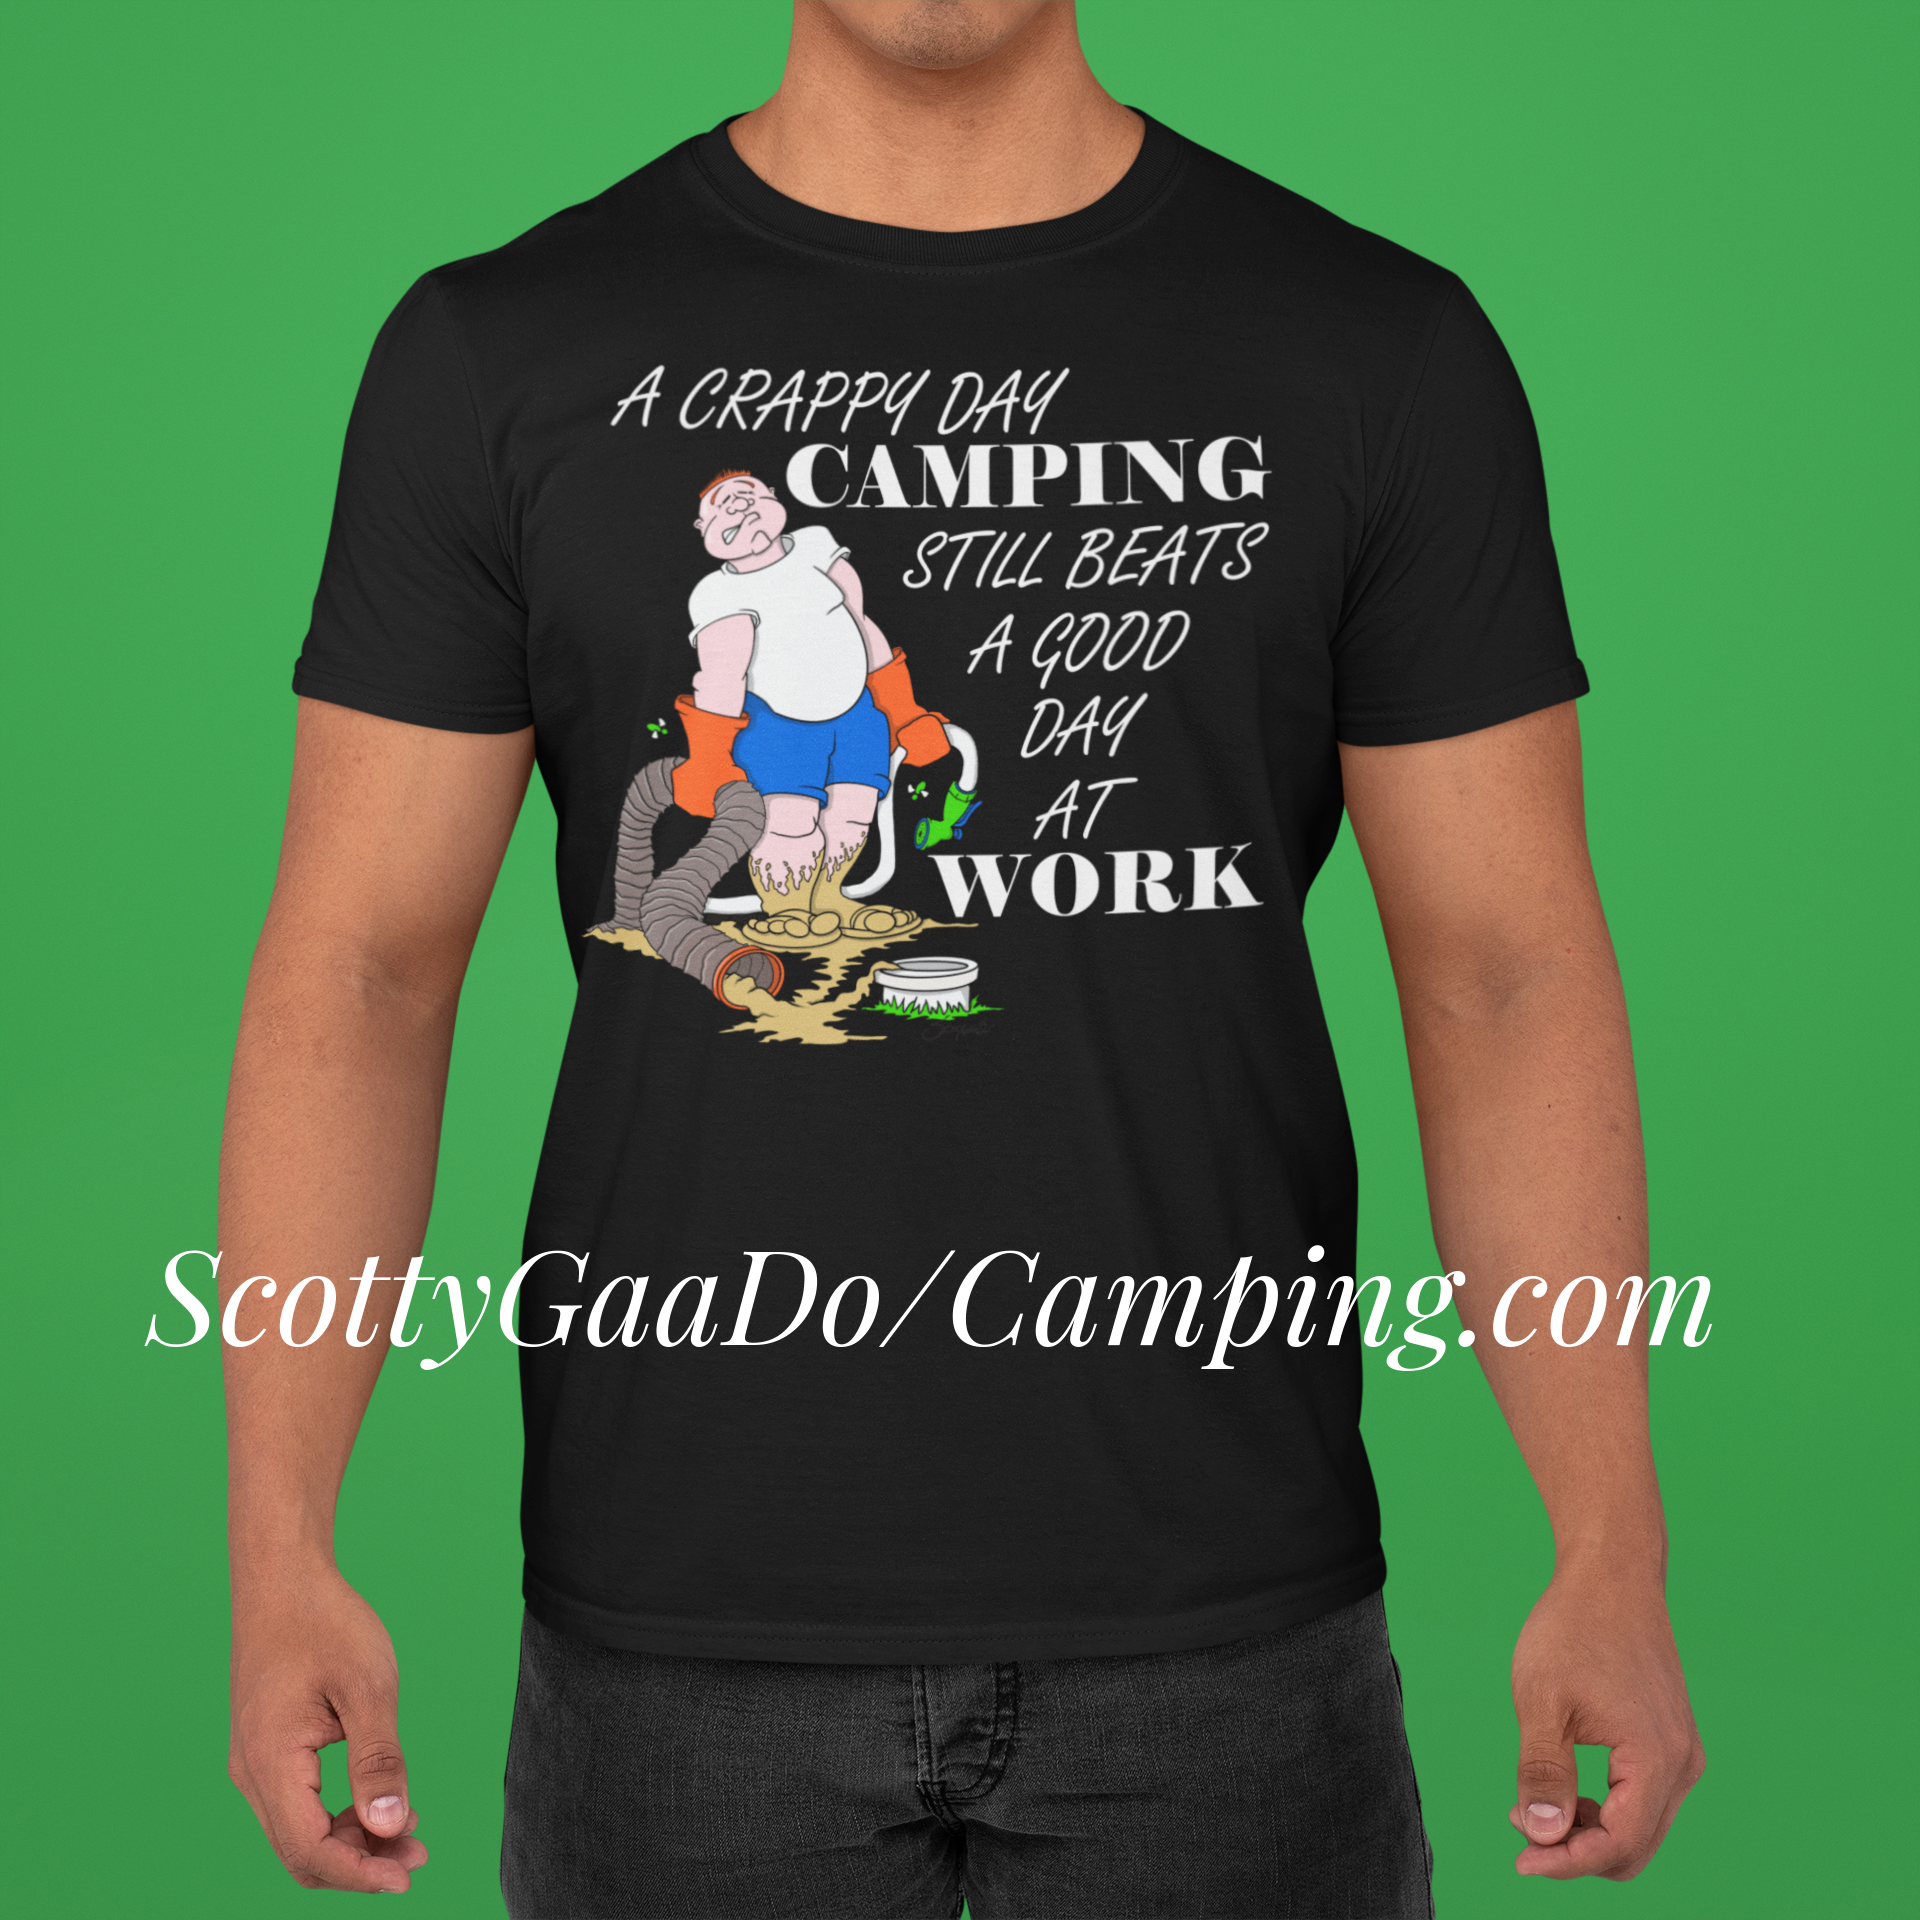 A Crappy Day Camping Still Beats A Good Day At Work T-Shirt